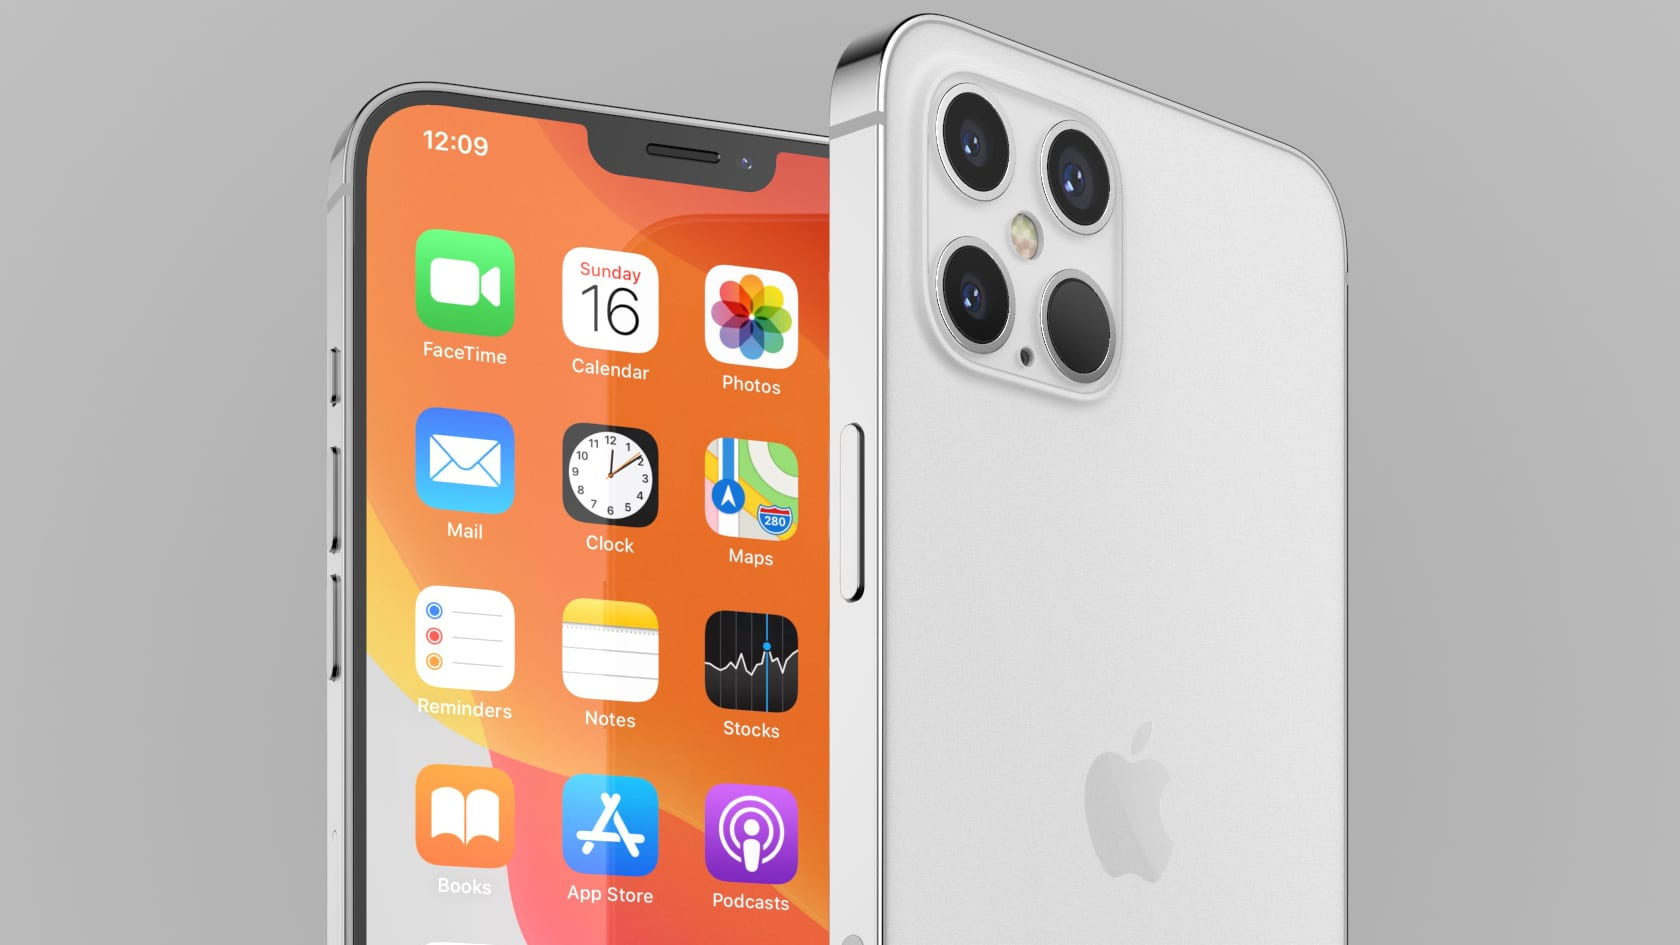 IPhone 12 will come with four cameras and great display, new video surfaced